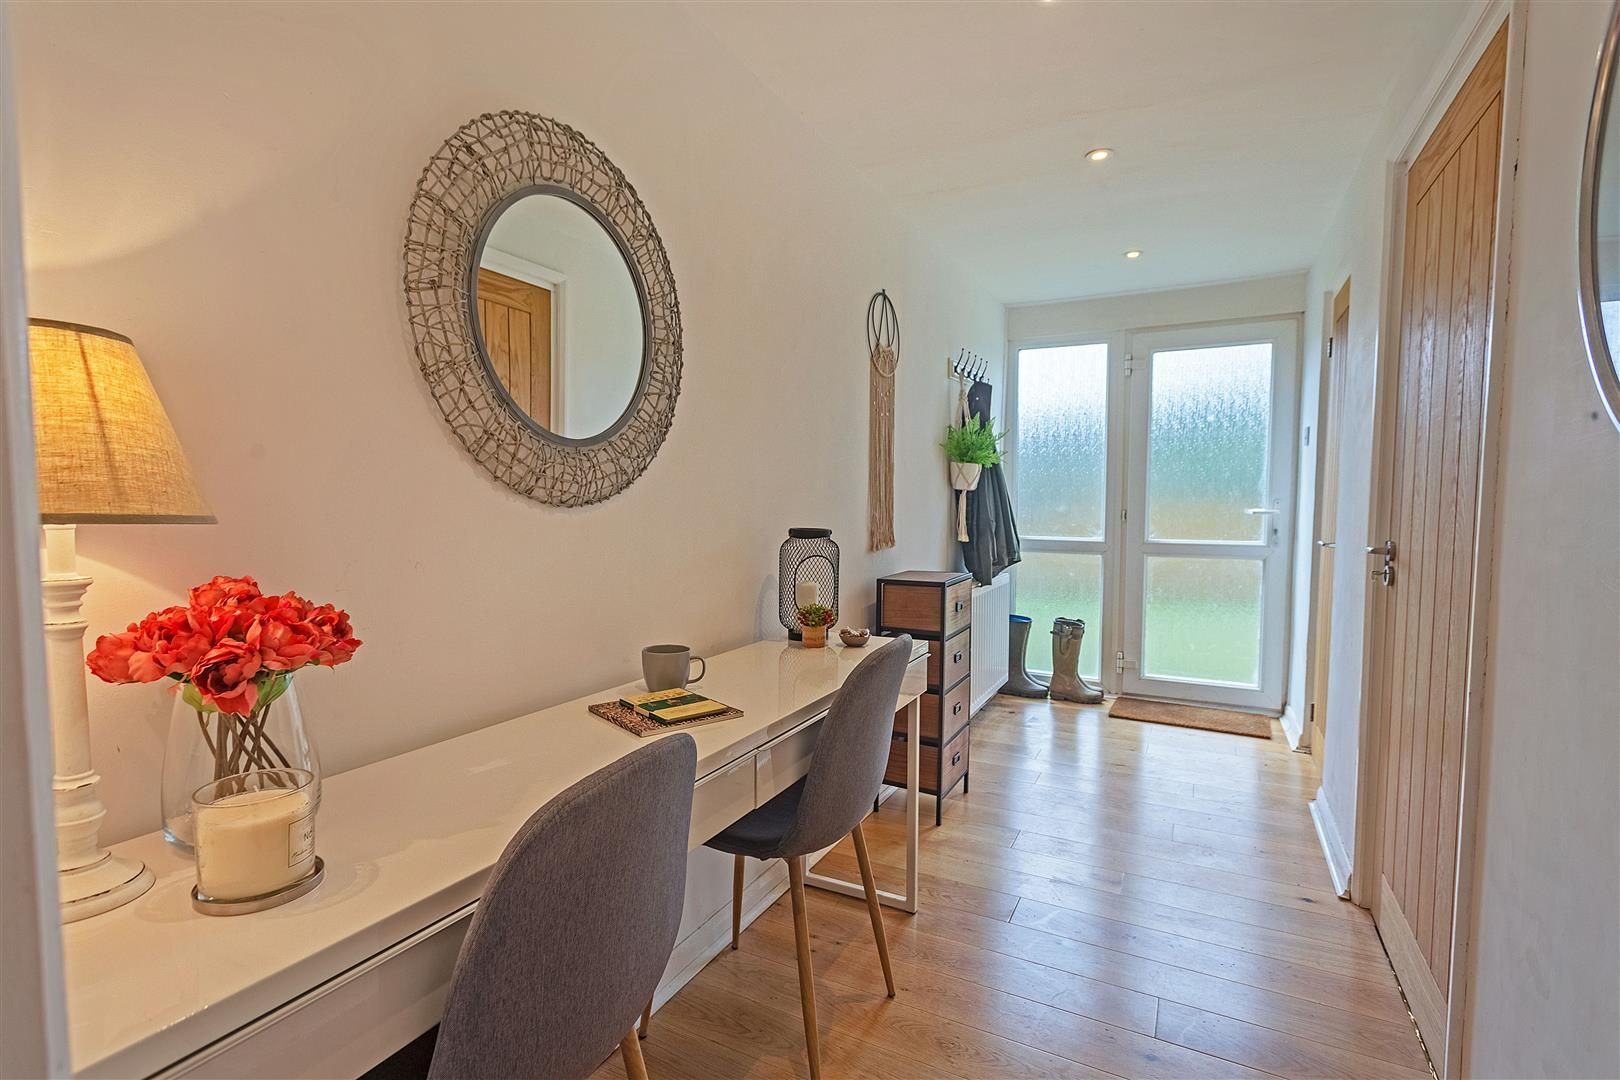 4 bed detached for sale in Luston 11